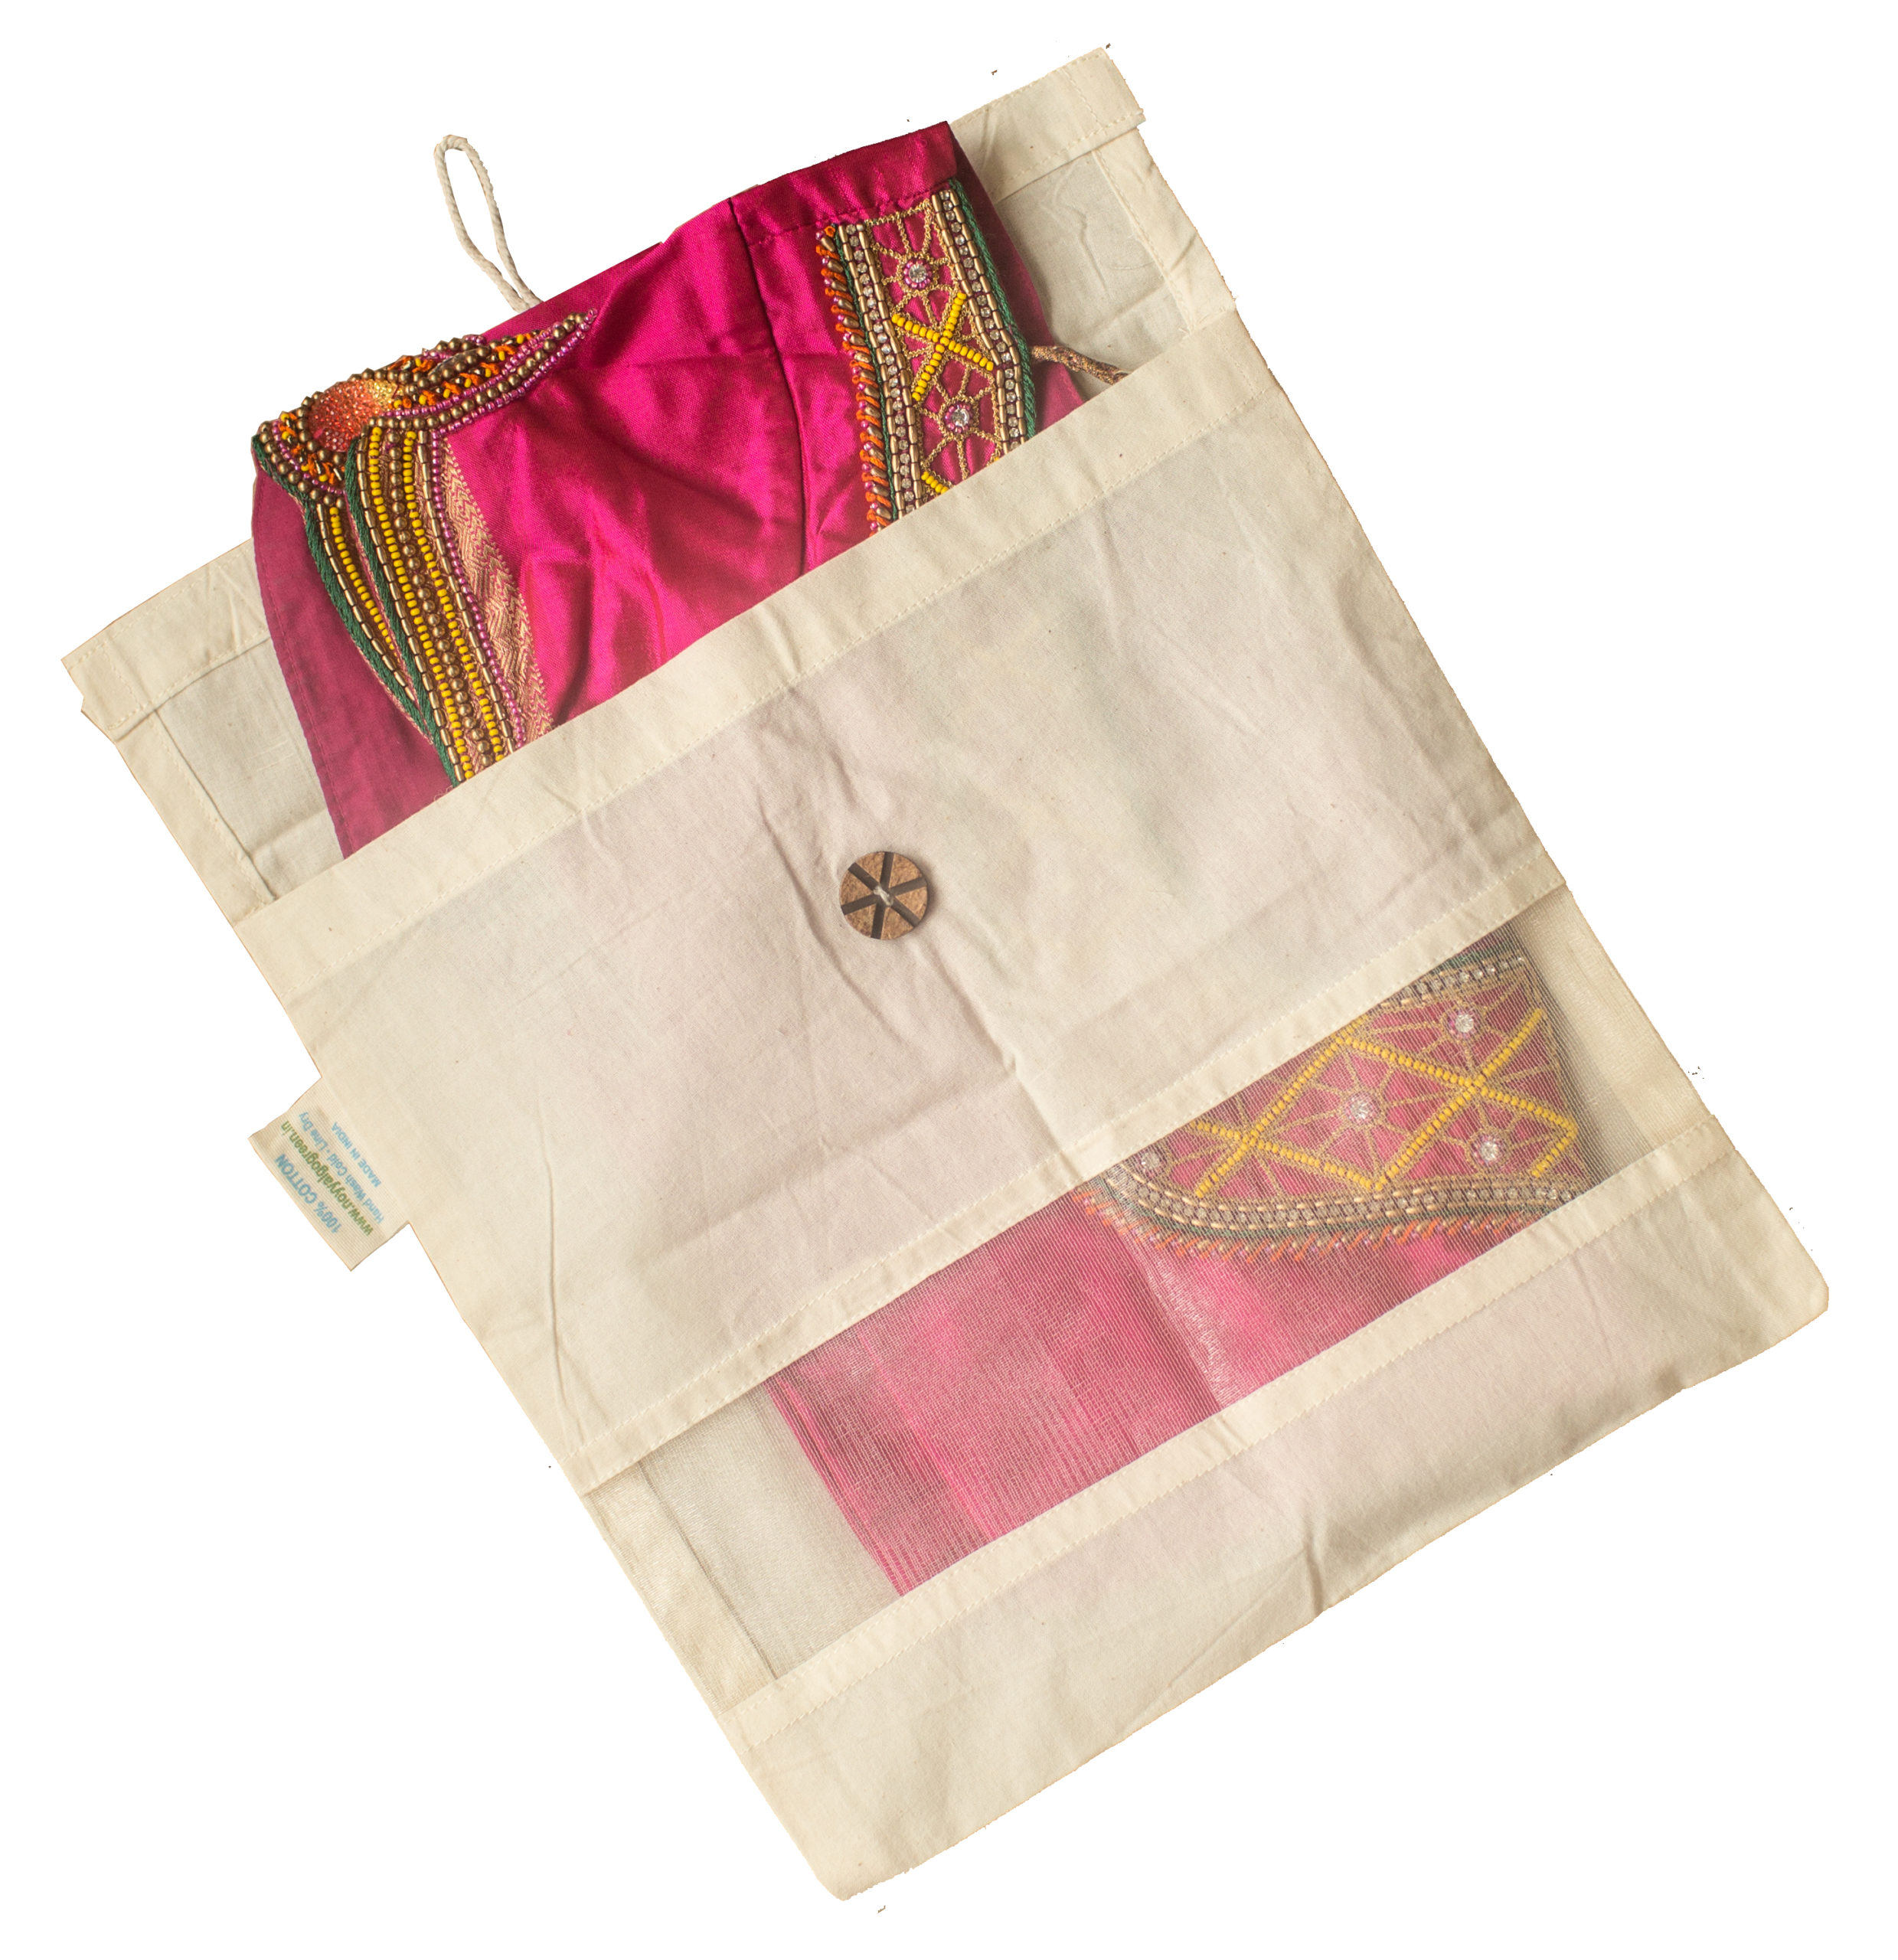 Blouse bag - Pack of 5